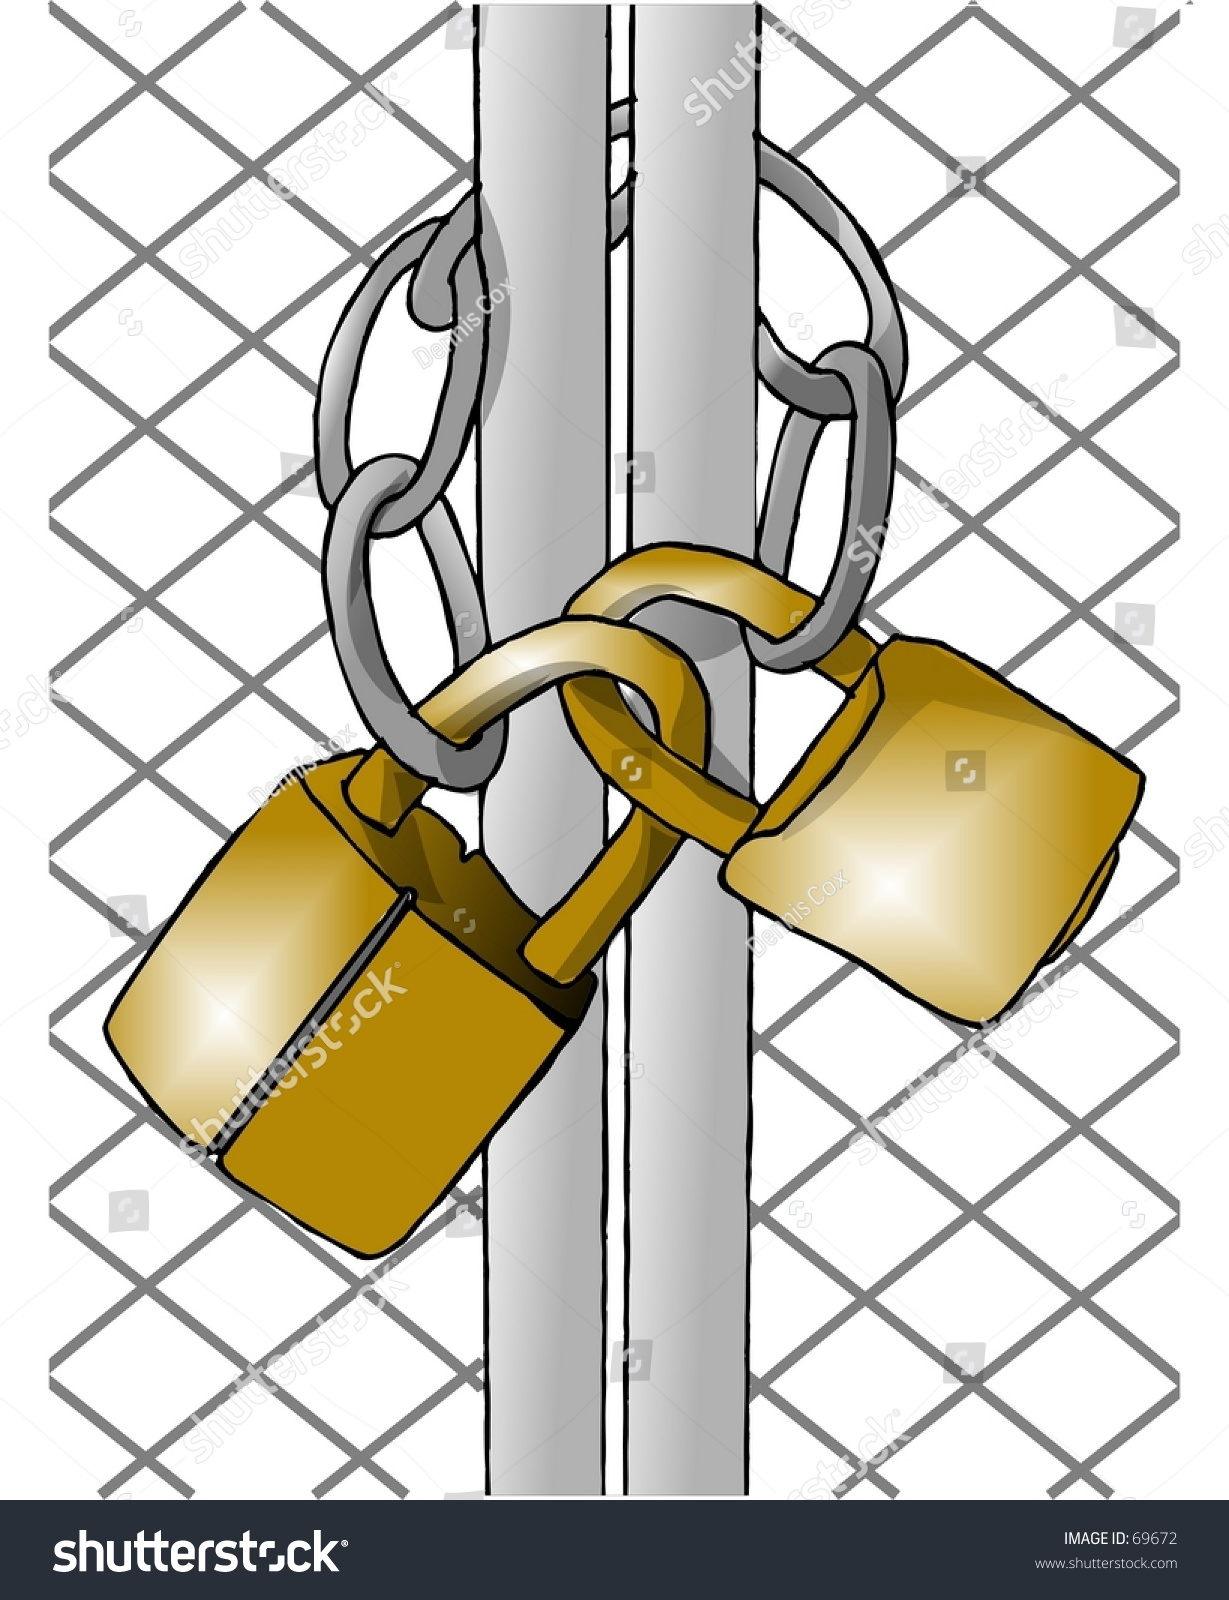 Clipart illustration of padlocks and a chain on gate